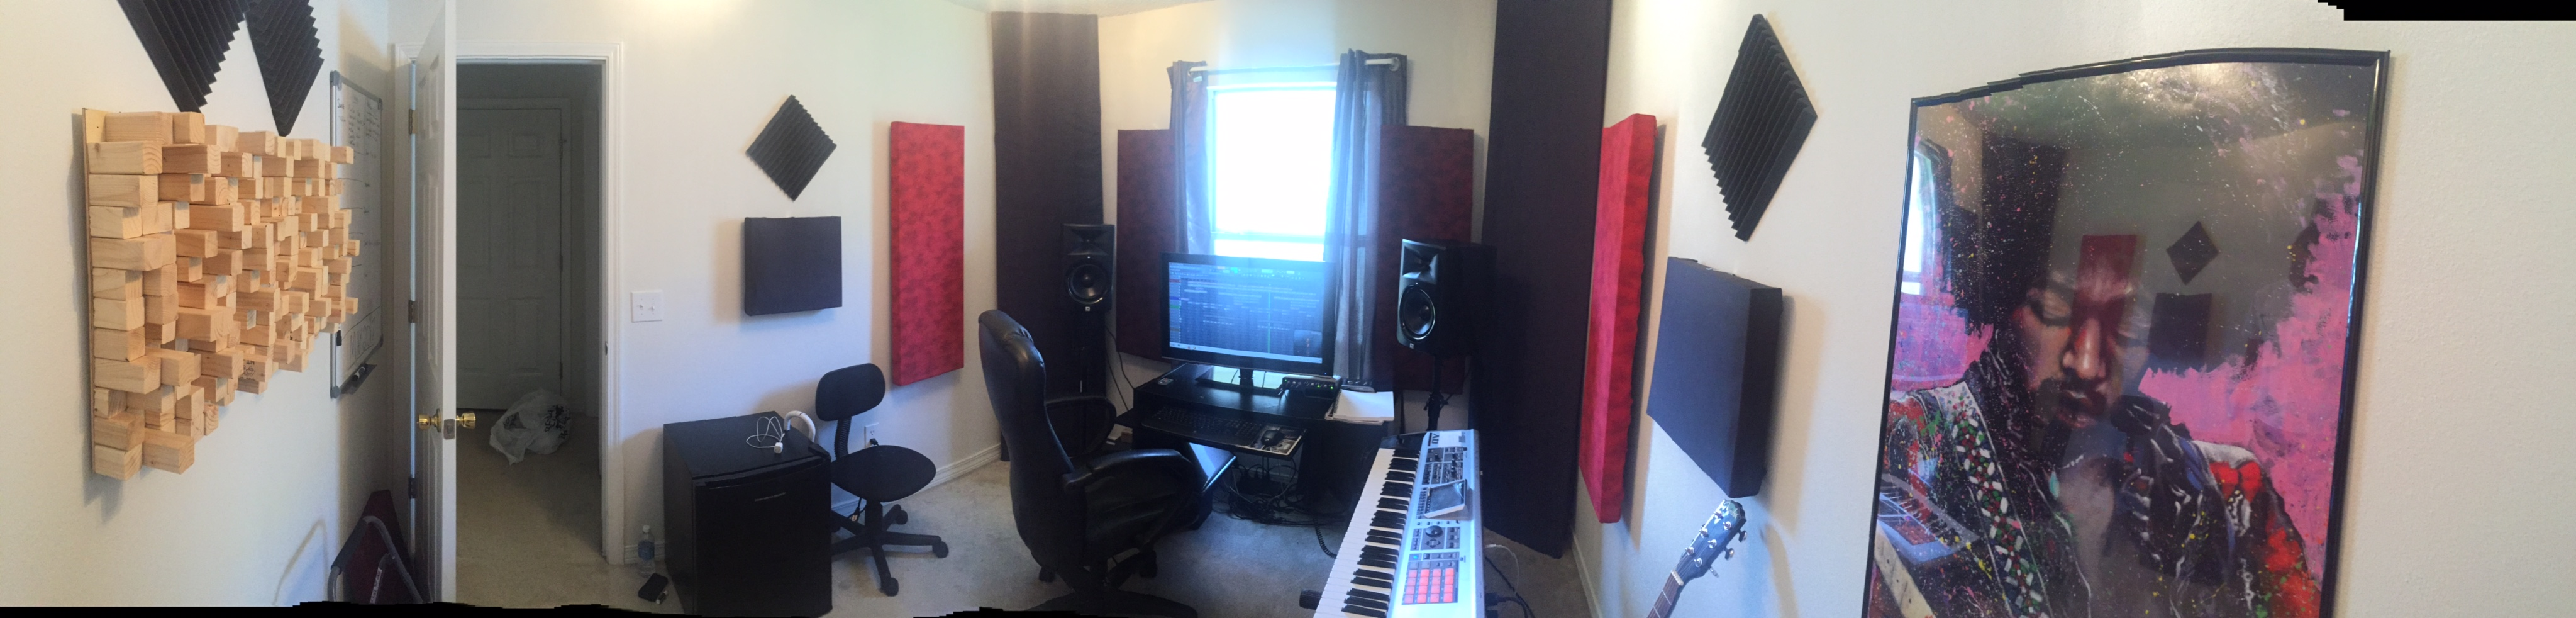 The_station_at_pensacola__studiopic_